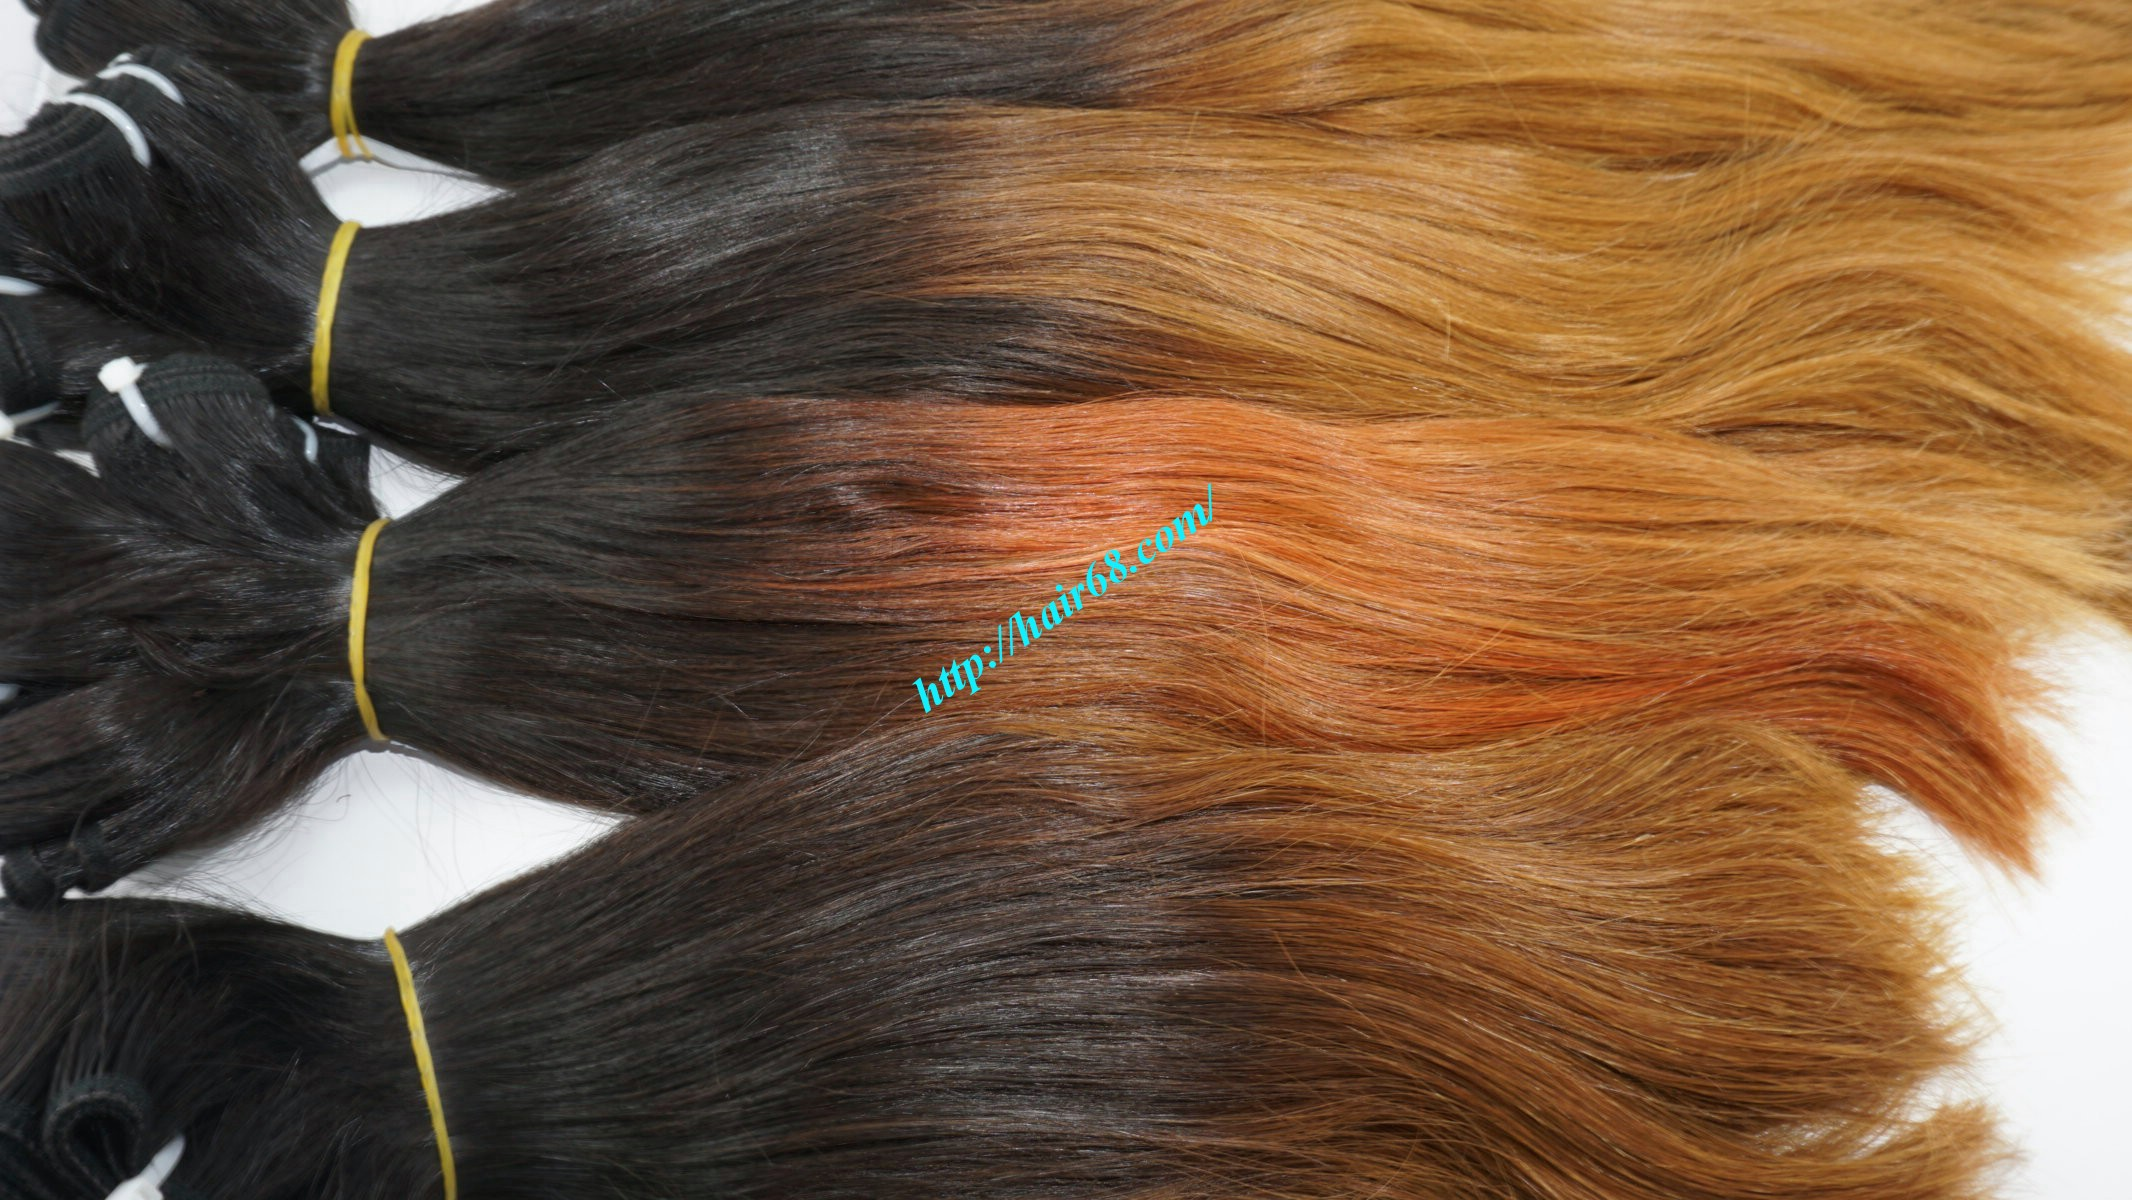 26 inch remy ombre hair extensions vietnam hair 9